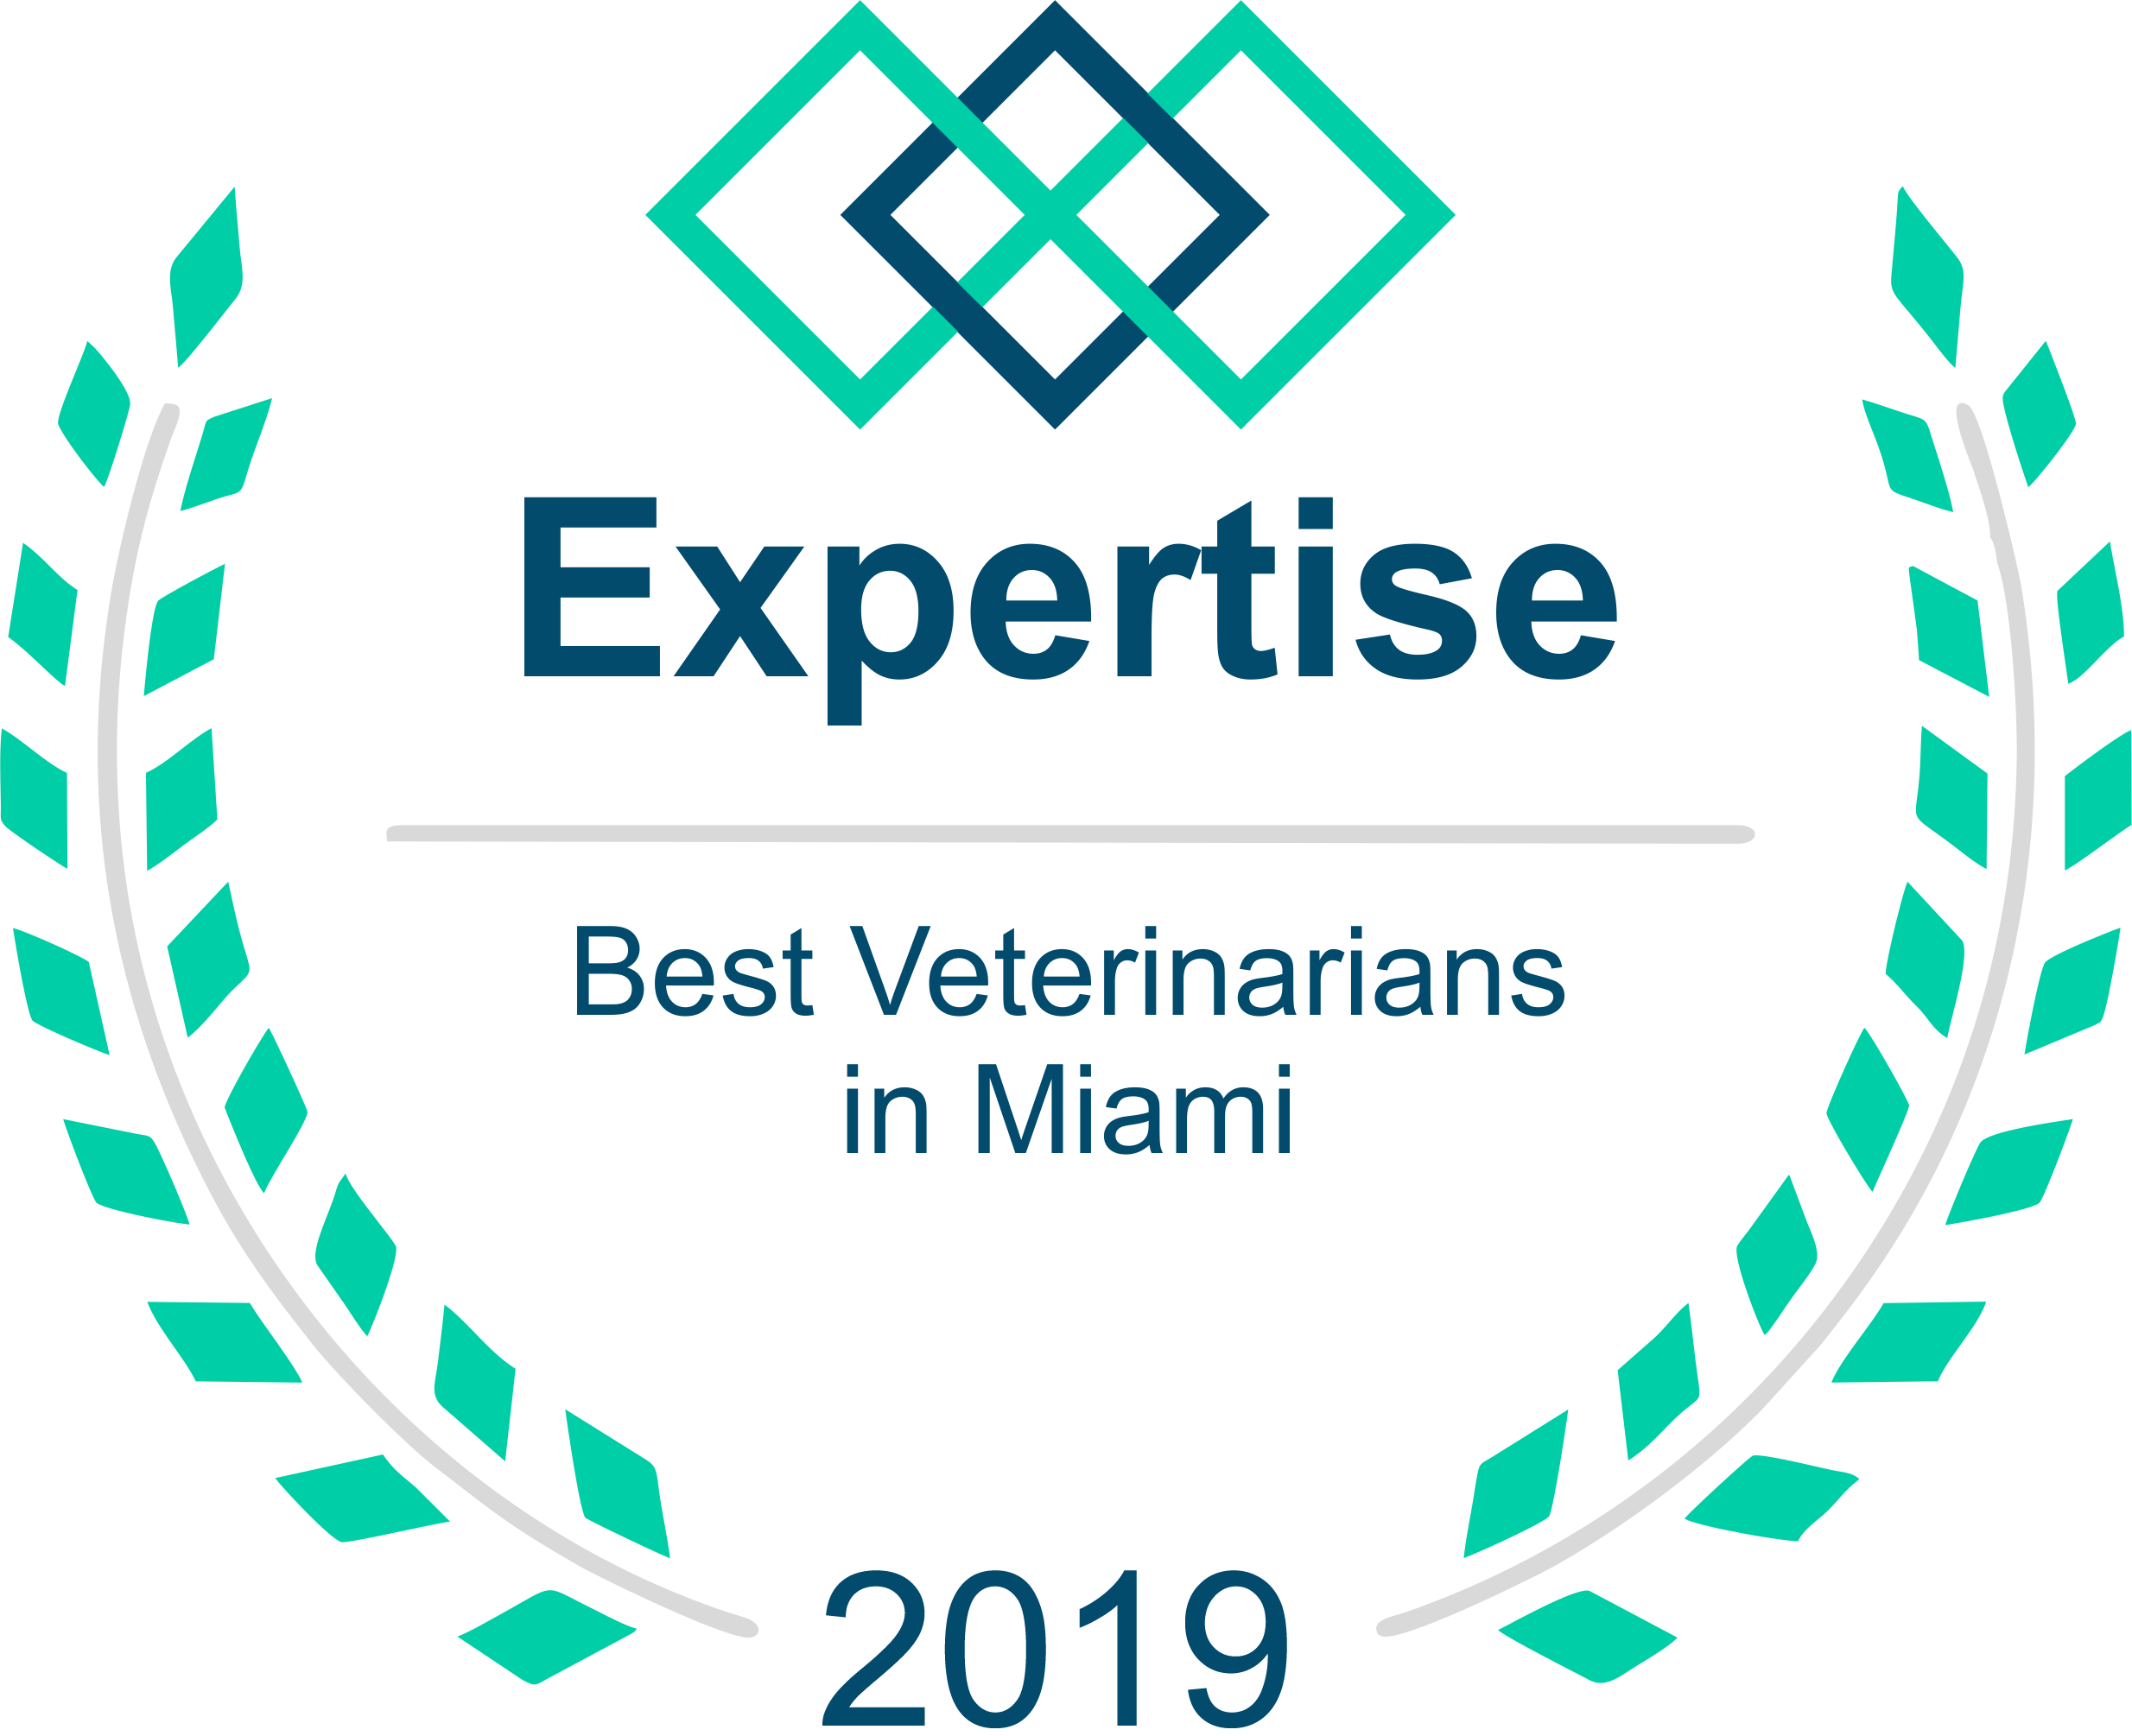 Expertise Best Veterinarians in Miami 2019